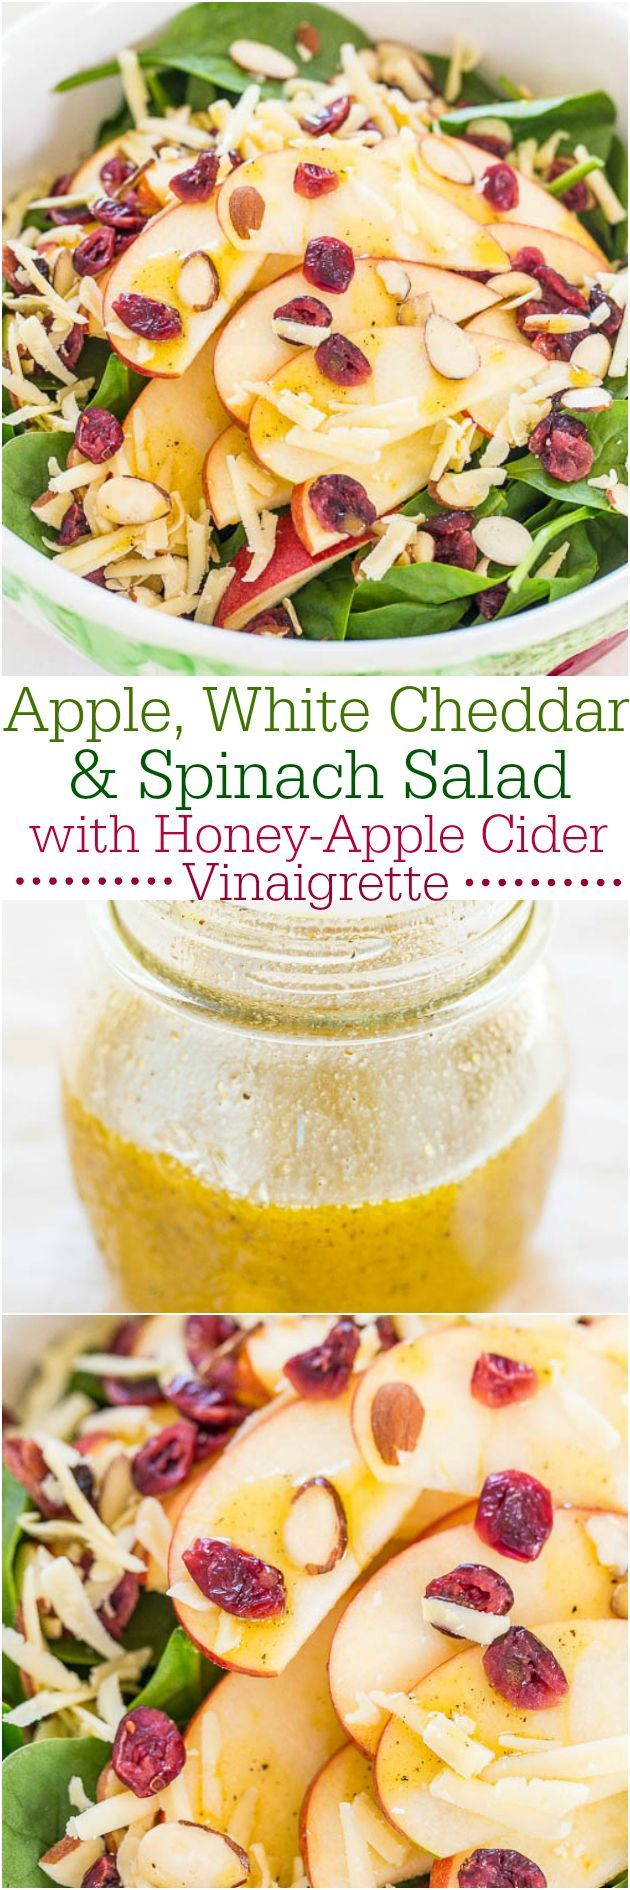 unique costume jewelry Apple  White Cheddar  and Spinach Salad with Honey Apple Cider Vinaigrette   The flavors just POP in this fast  easy  and healthy salad